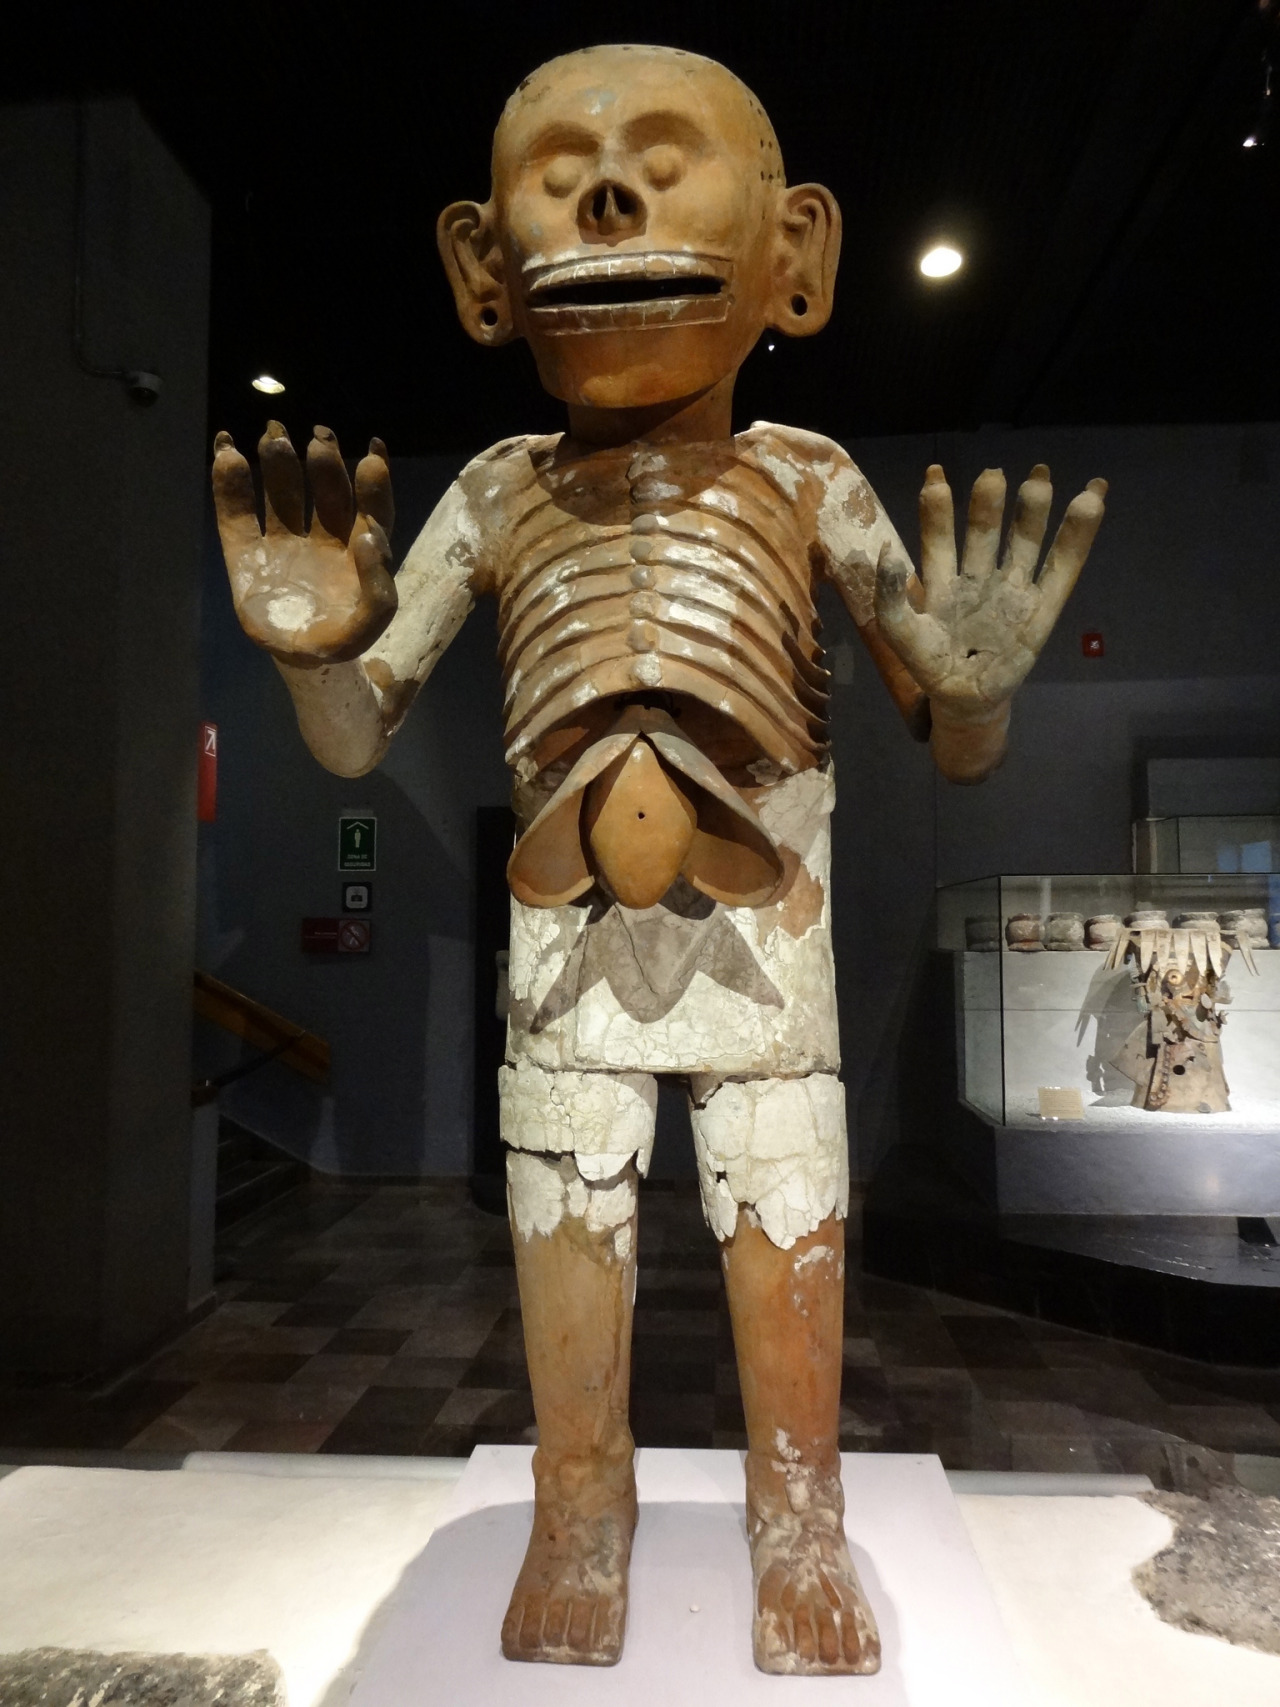 ancientart:  Aztec sculpture of Mictlantecuhtli. Artifact description via the Field Museum:  This statue depicts Mictlantecuhtli's liver falling from his chest; the Aztecs believed that a person's liver housed his passion, much like today's society associates the heart with passion. The holes in Mictlantecuhtli's head would have been filled with curly hair, which represented chaos to the Aztecs.  Courtesy & currently located at Templo Mayor, Mexico. Photo taken by feanor0